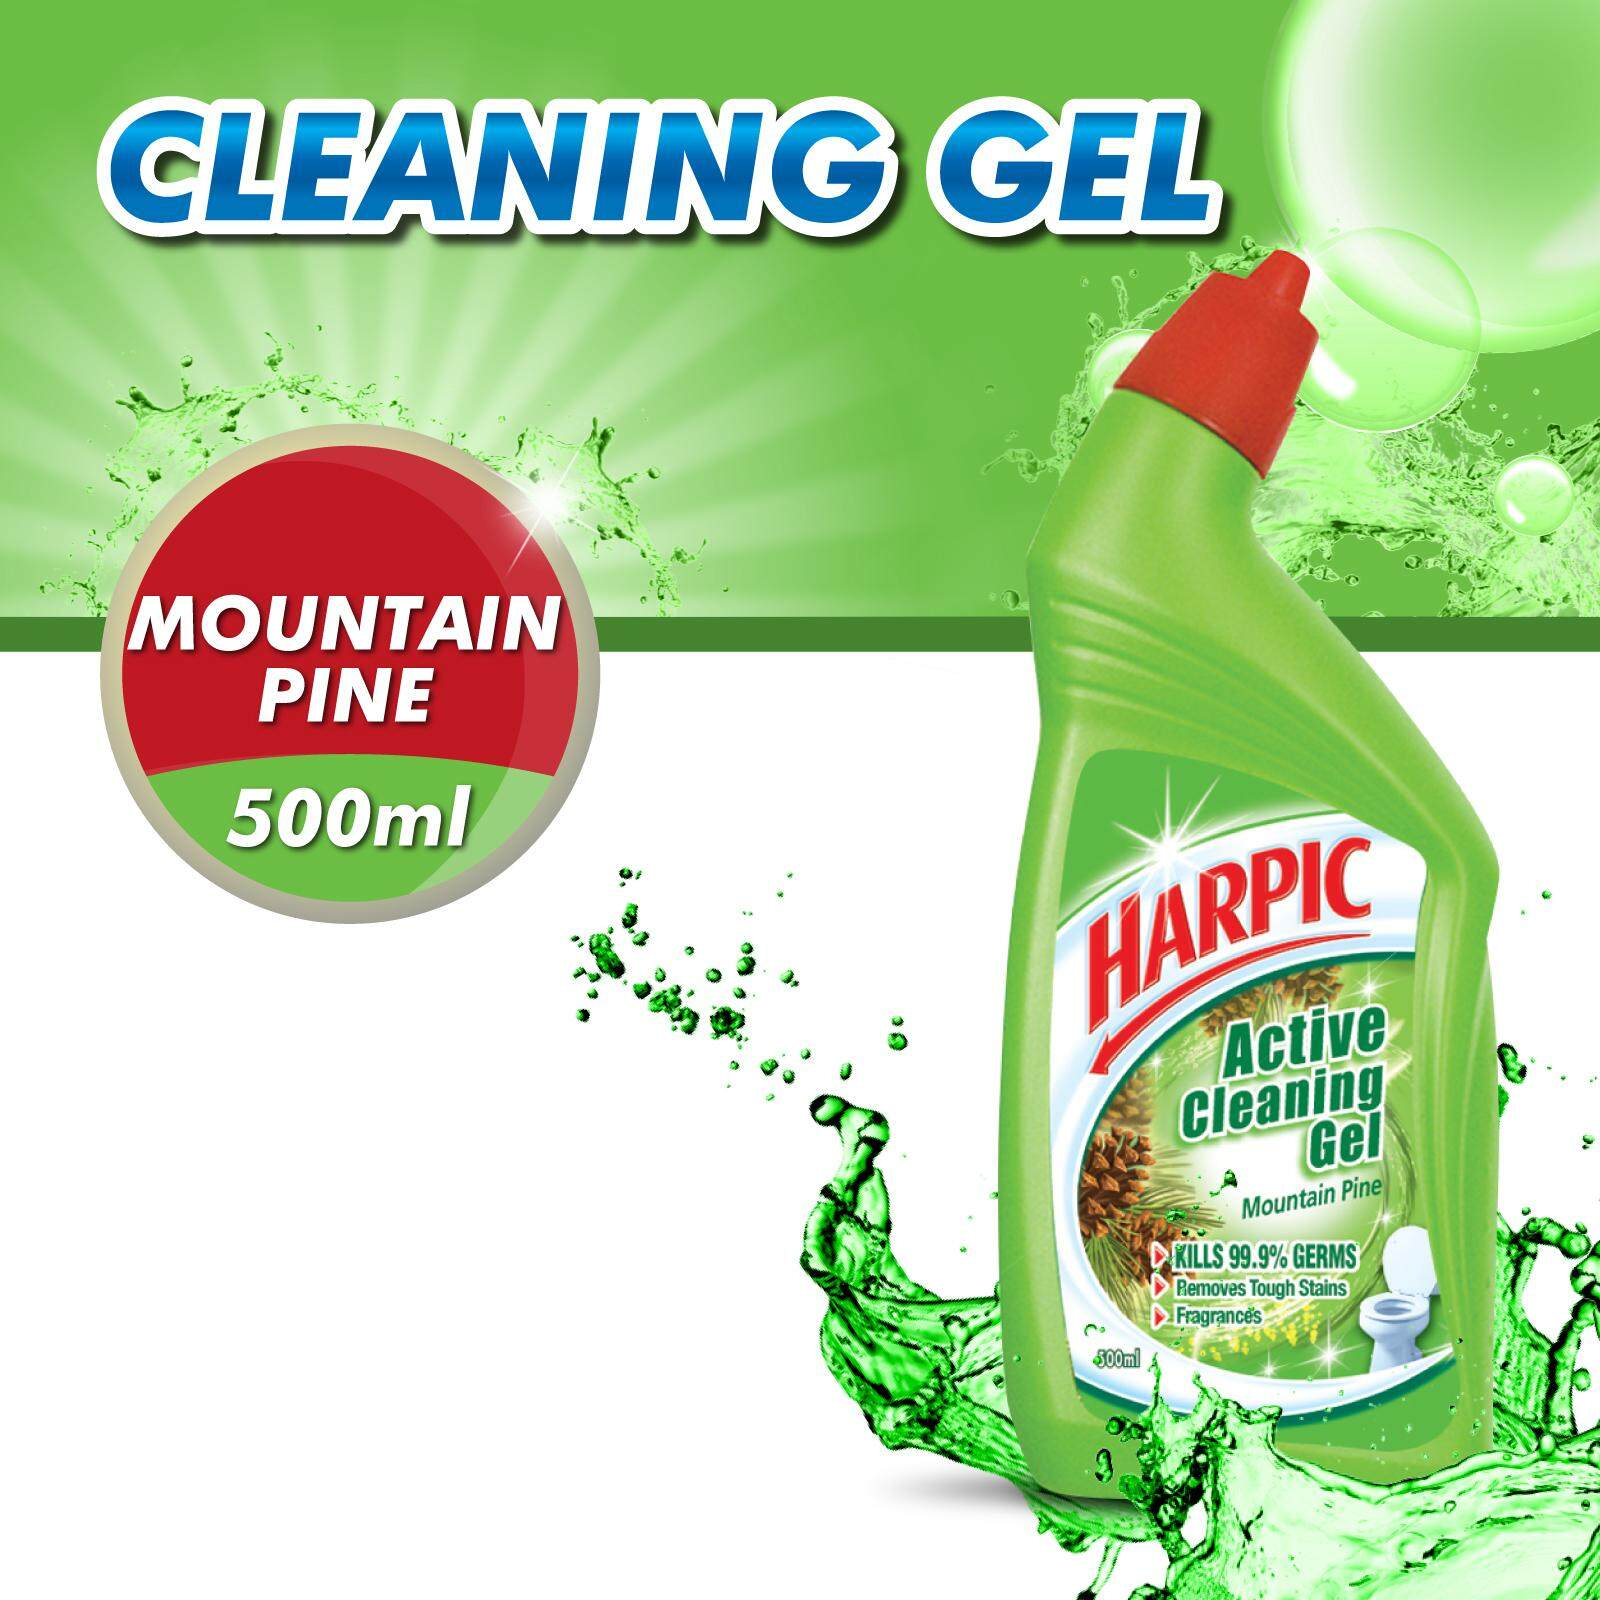 Features Harpic Active Cleaning Gel Mountain Pine 500ml Dan Harga